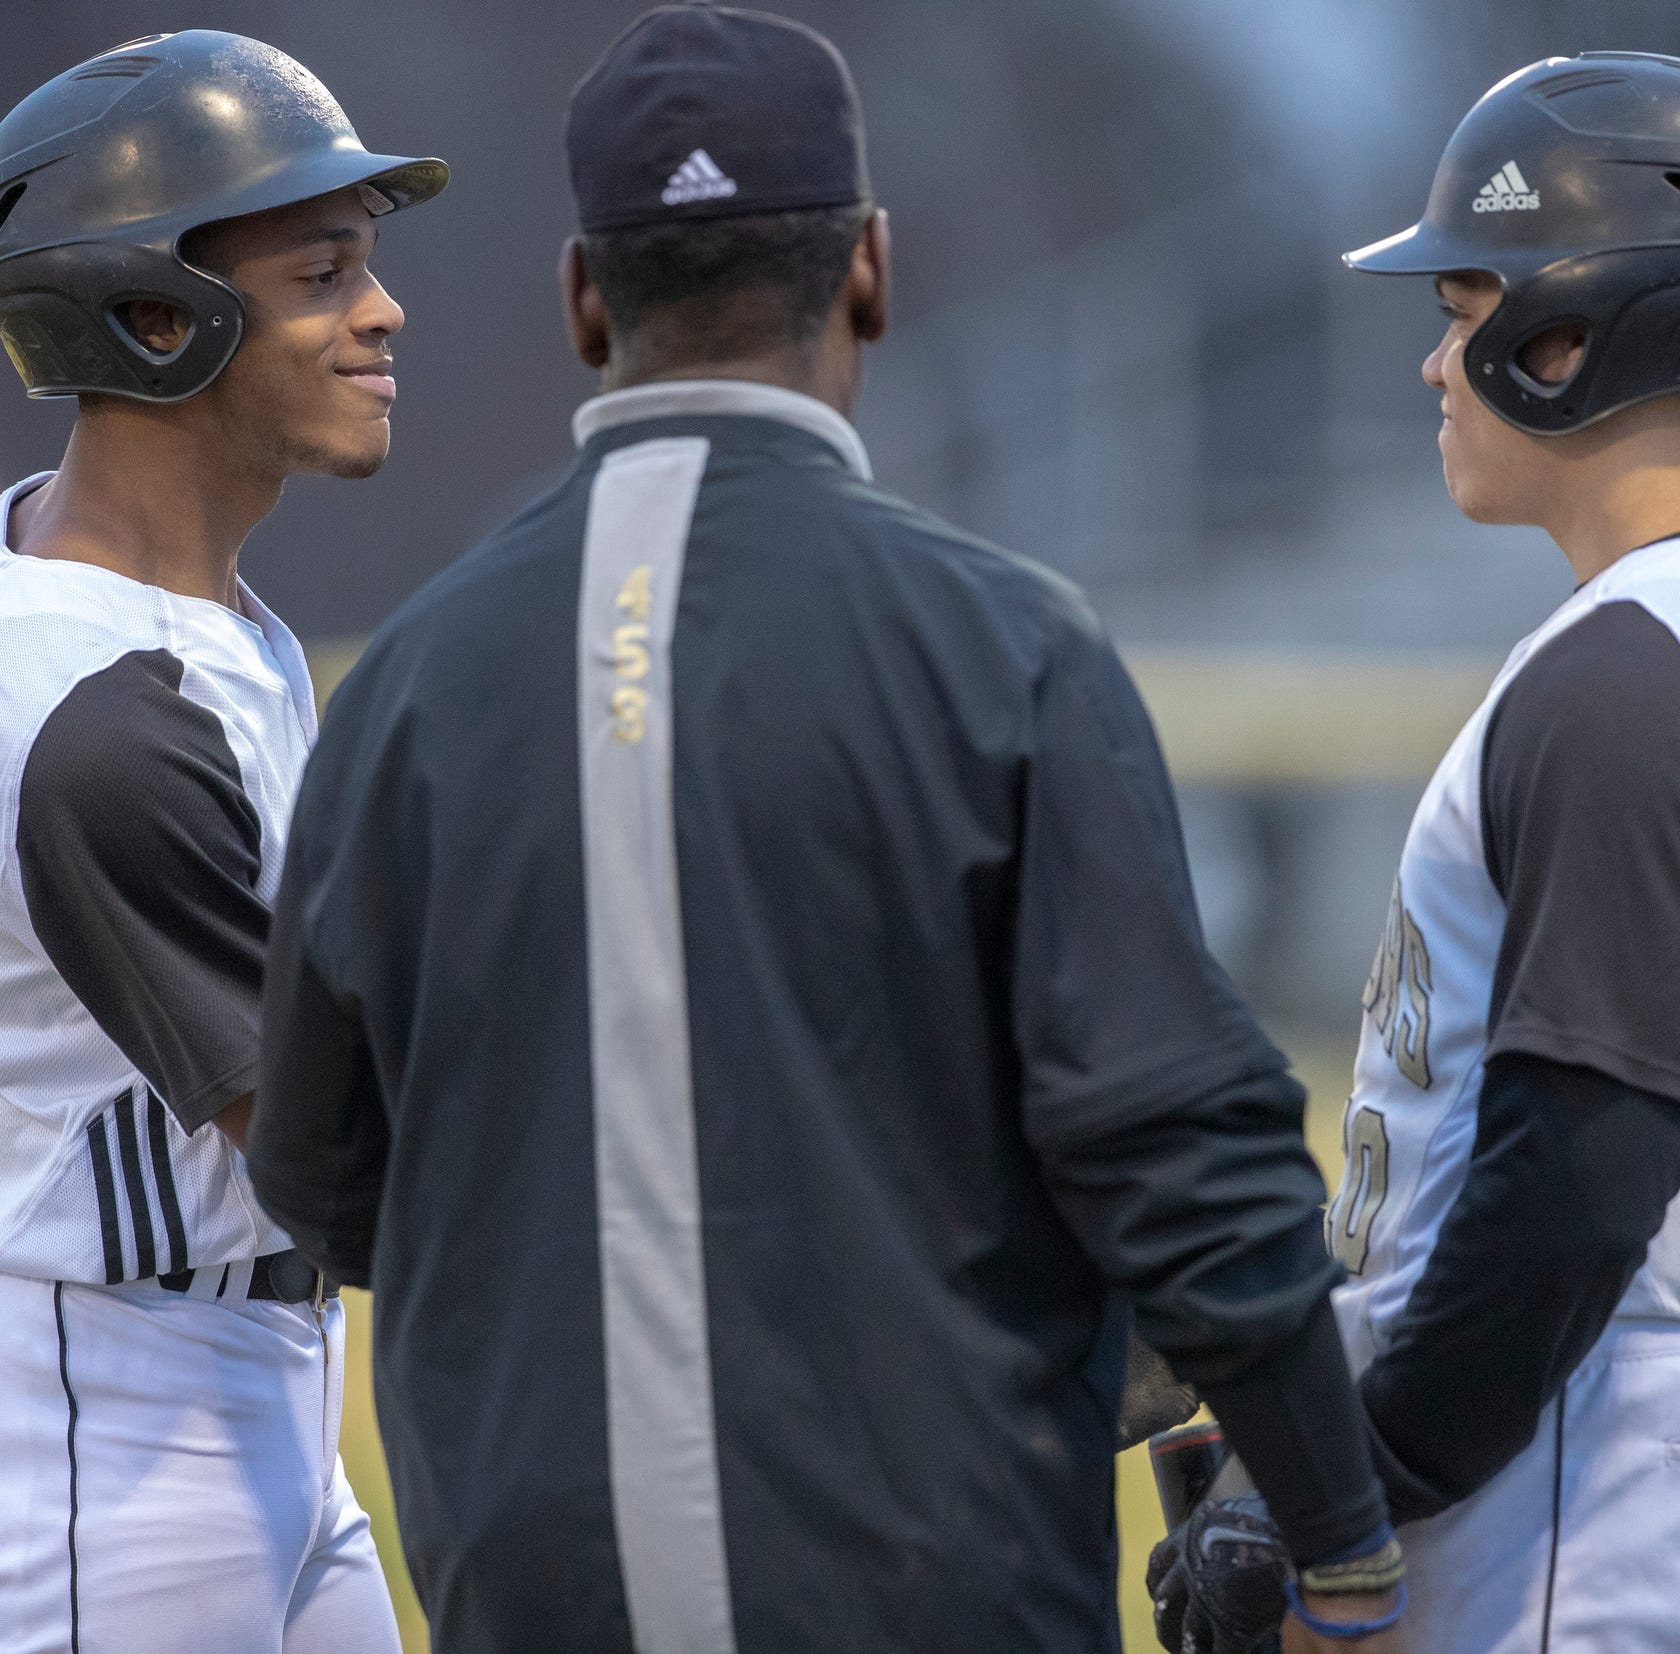 Hunter Shanklin (left), during a game against Pike High School, at Warren Central High School, Indianapolis, Wednesday, April 3, 2019. Shanklin broke his leg last fall while playing football for the school, and is playing baseball this Spring with few limitations.